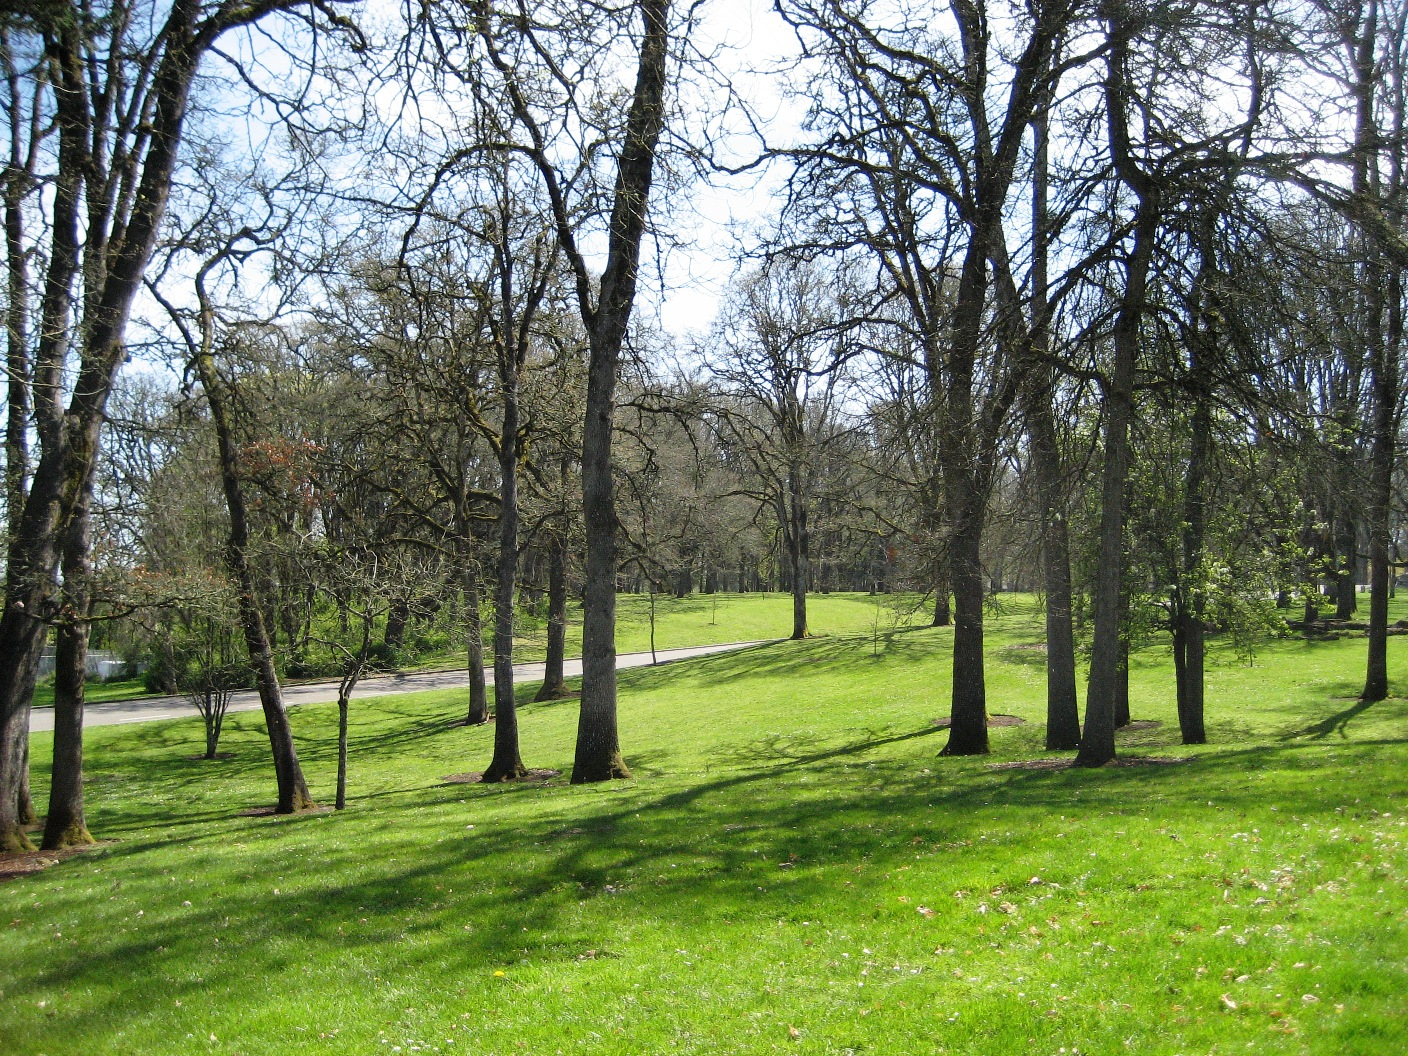 Bush_Pasture_Park_Salem_Oregon